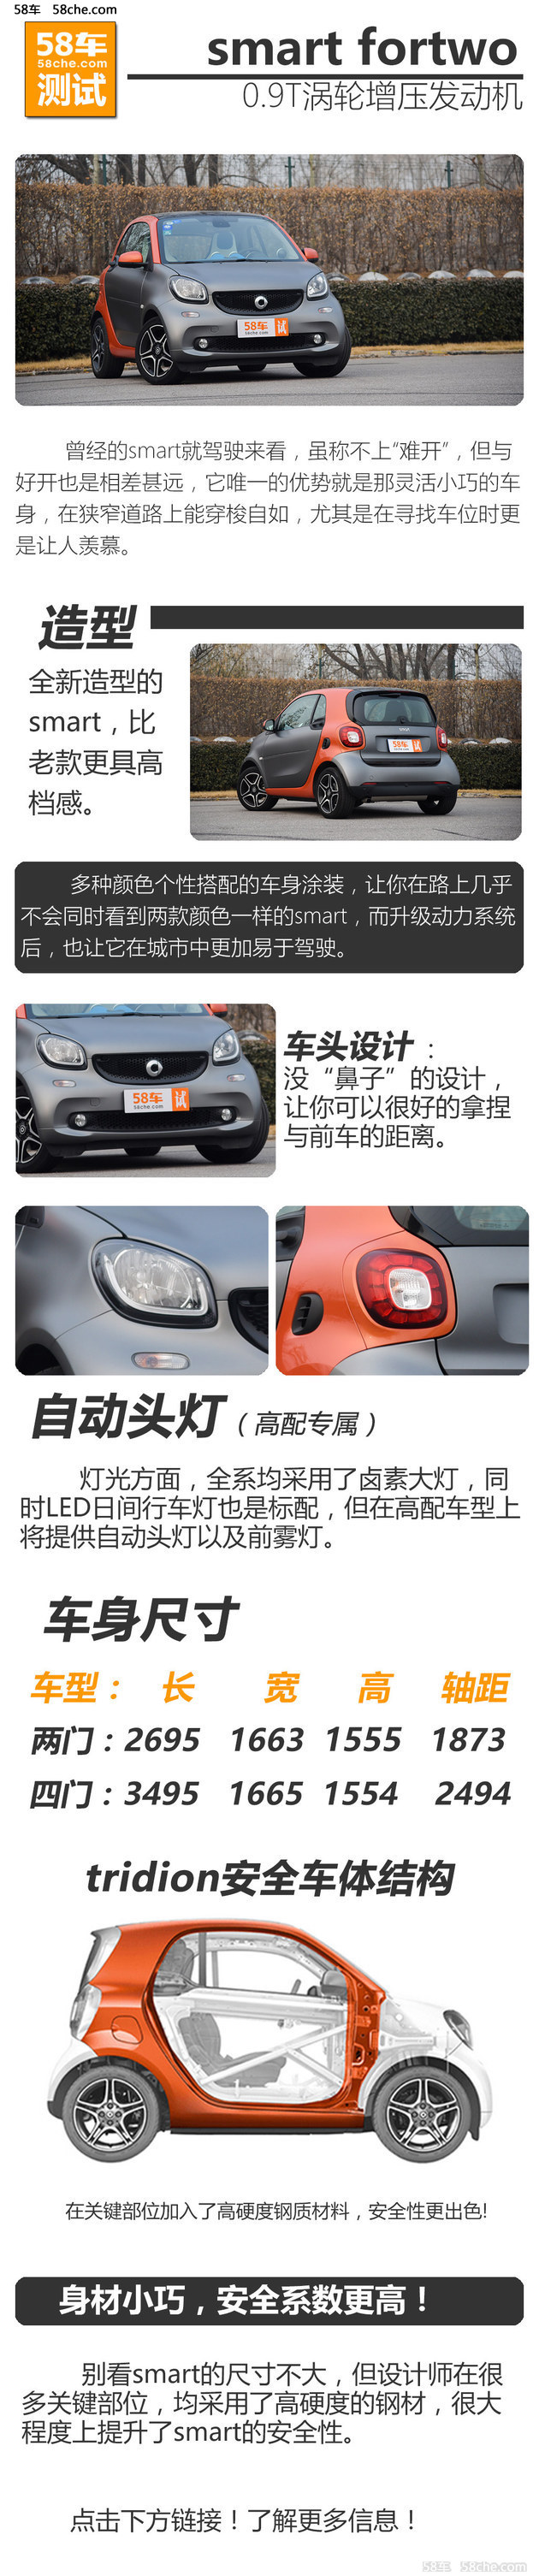 smart fortwo 0.9T测试 强过数据的体验